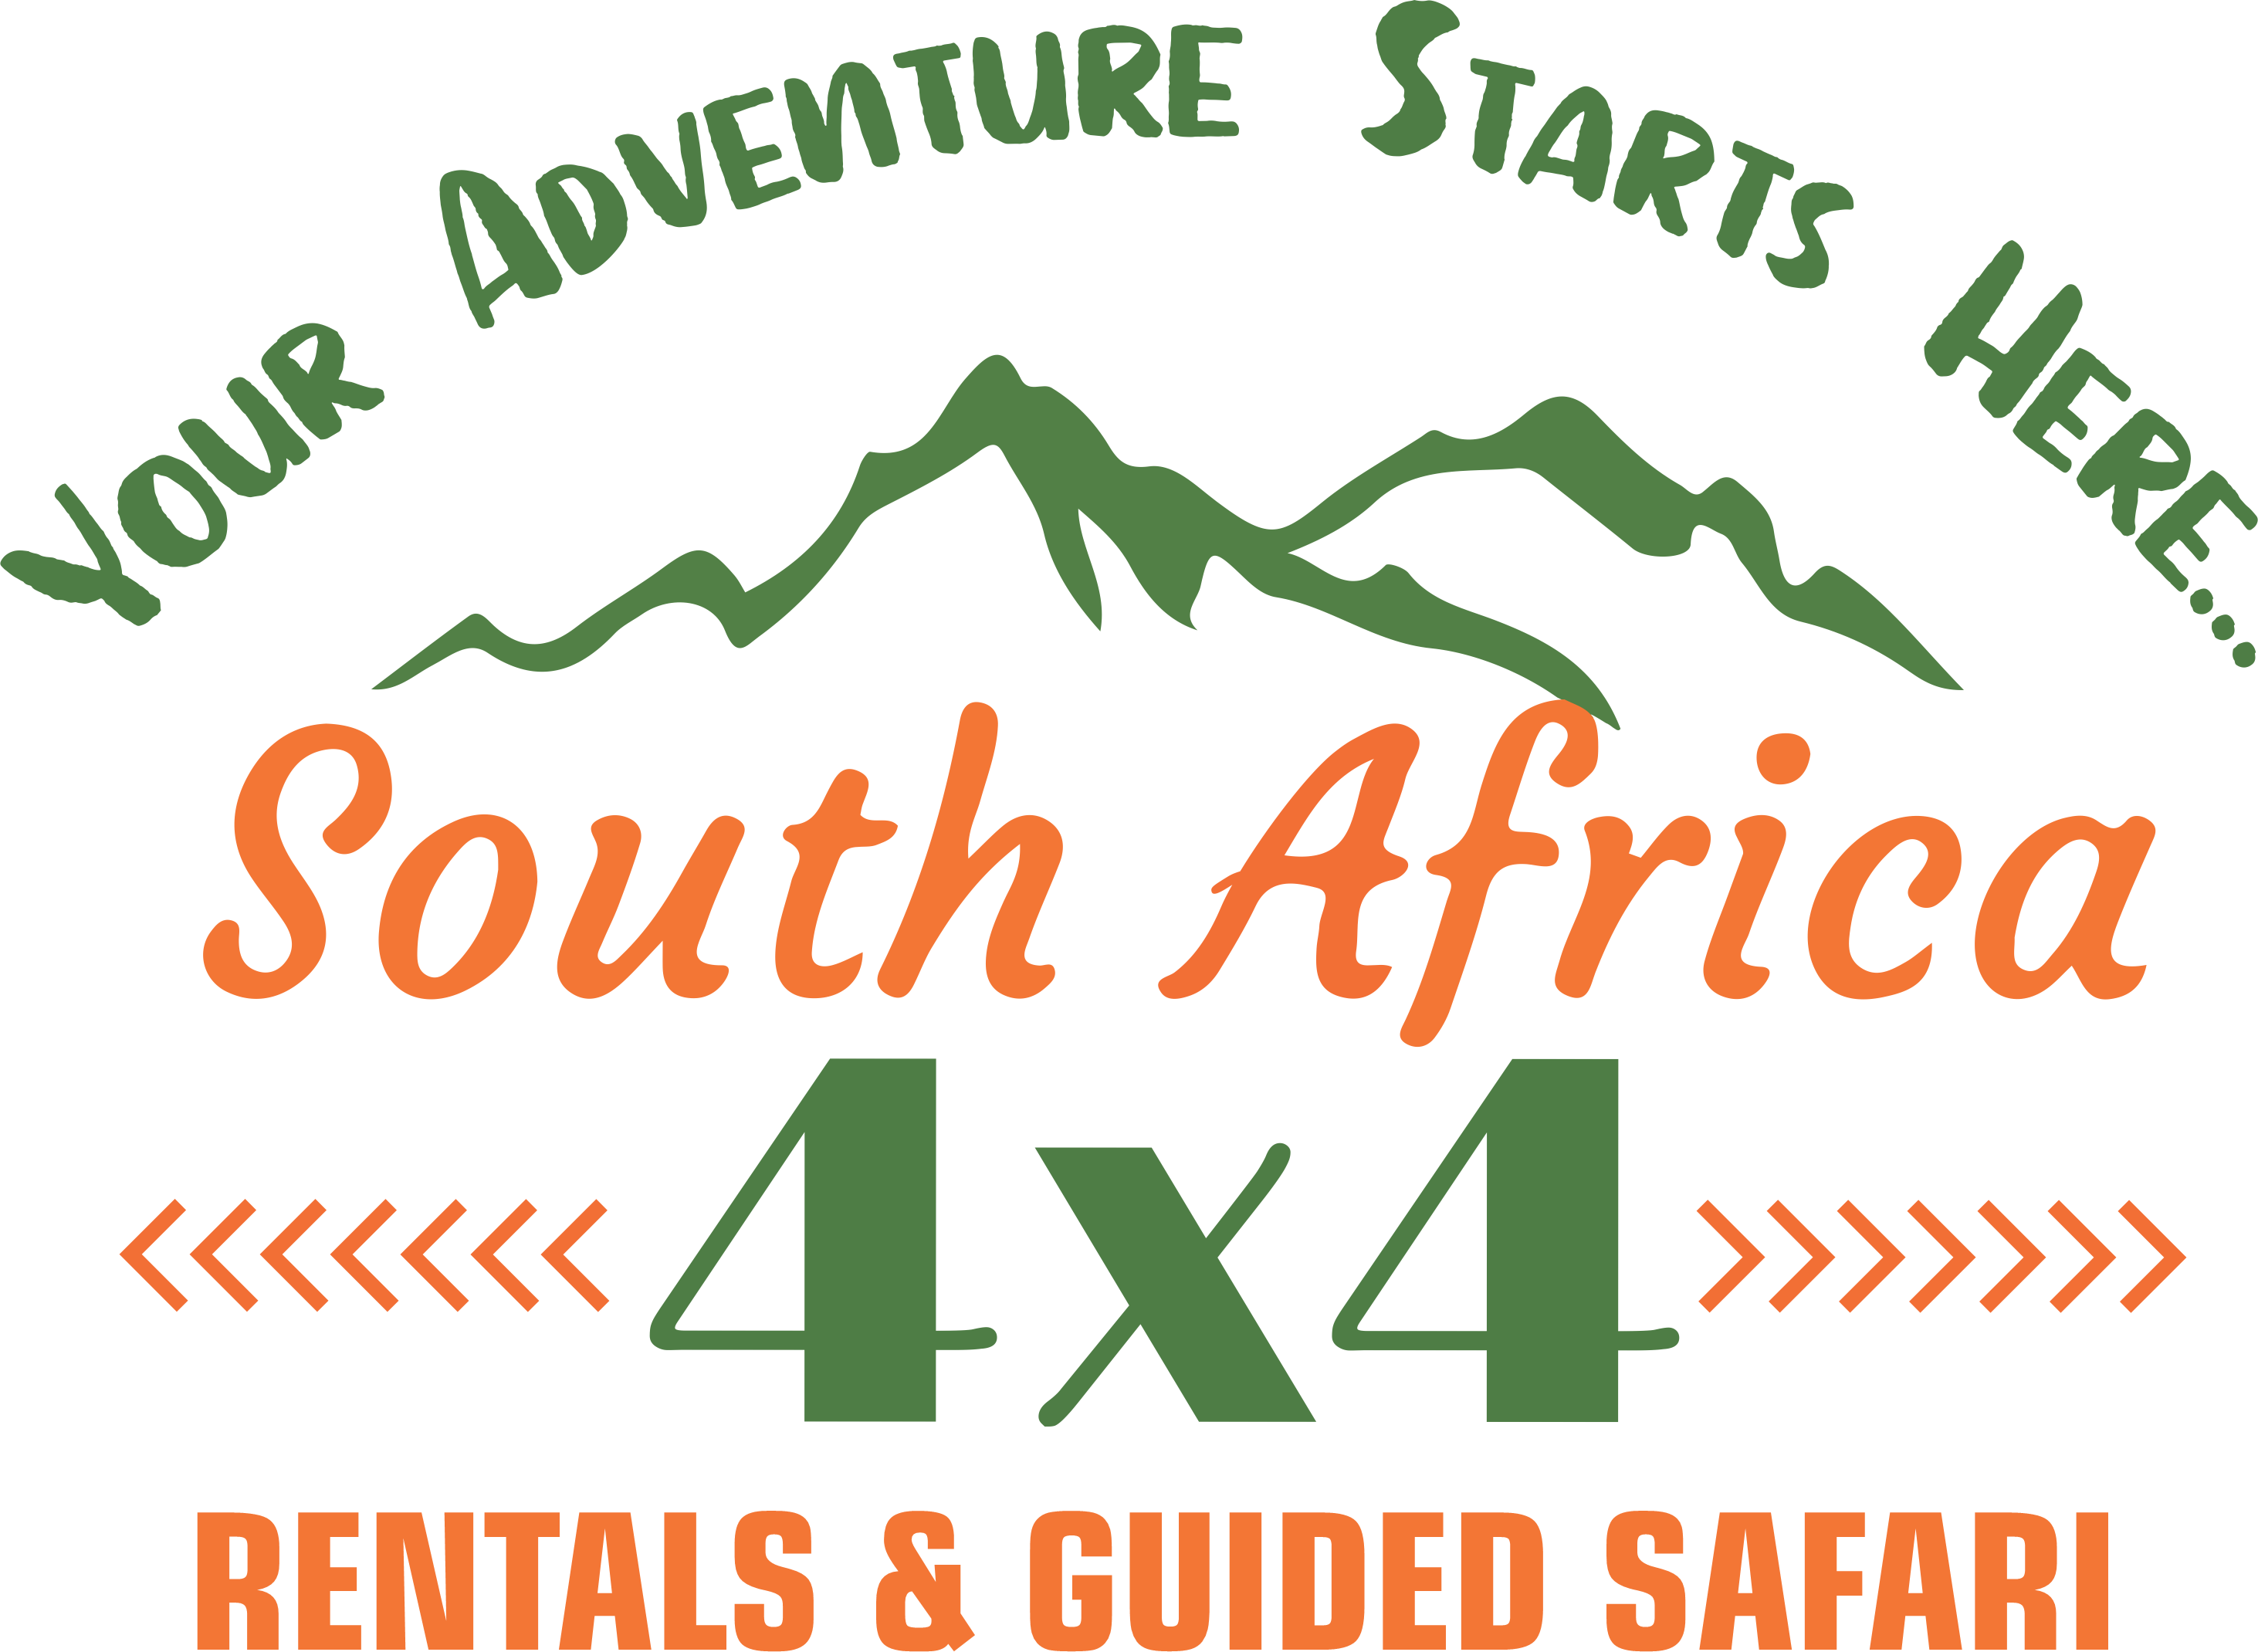 South Africa 4×4 Rentals and Guided Safaris